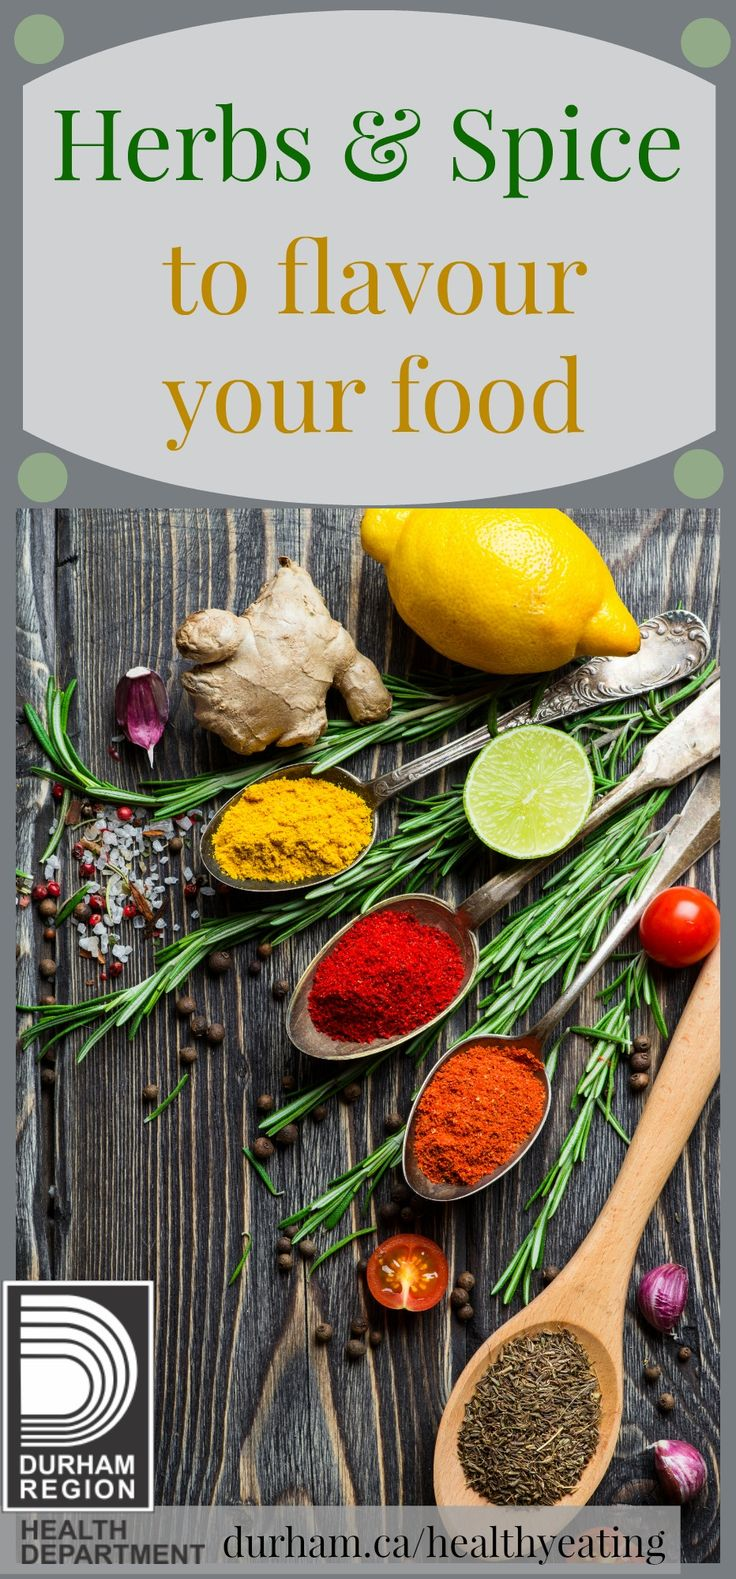 Herbs and spices are great ways to add flavour to different meals. If you're looking for other ways to add flavour to your food but don't' want to use salt, take a look at these great suggestions to help you when you cook.